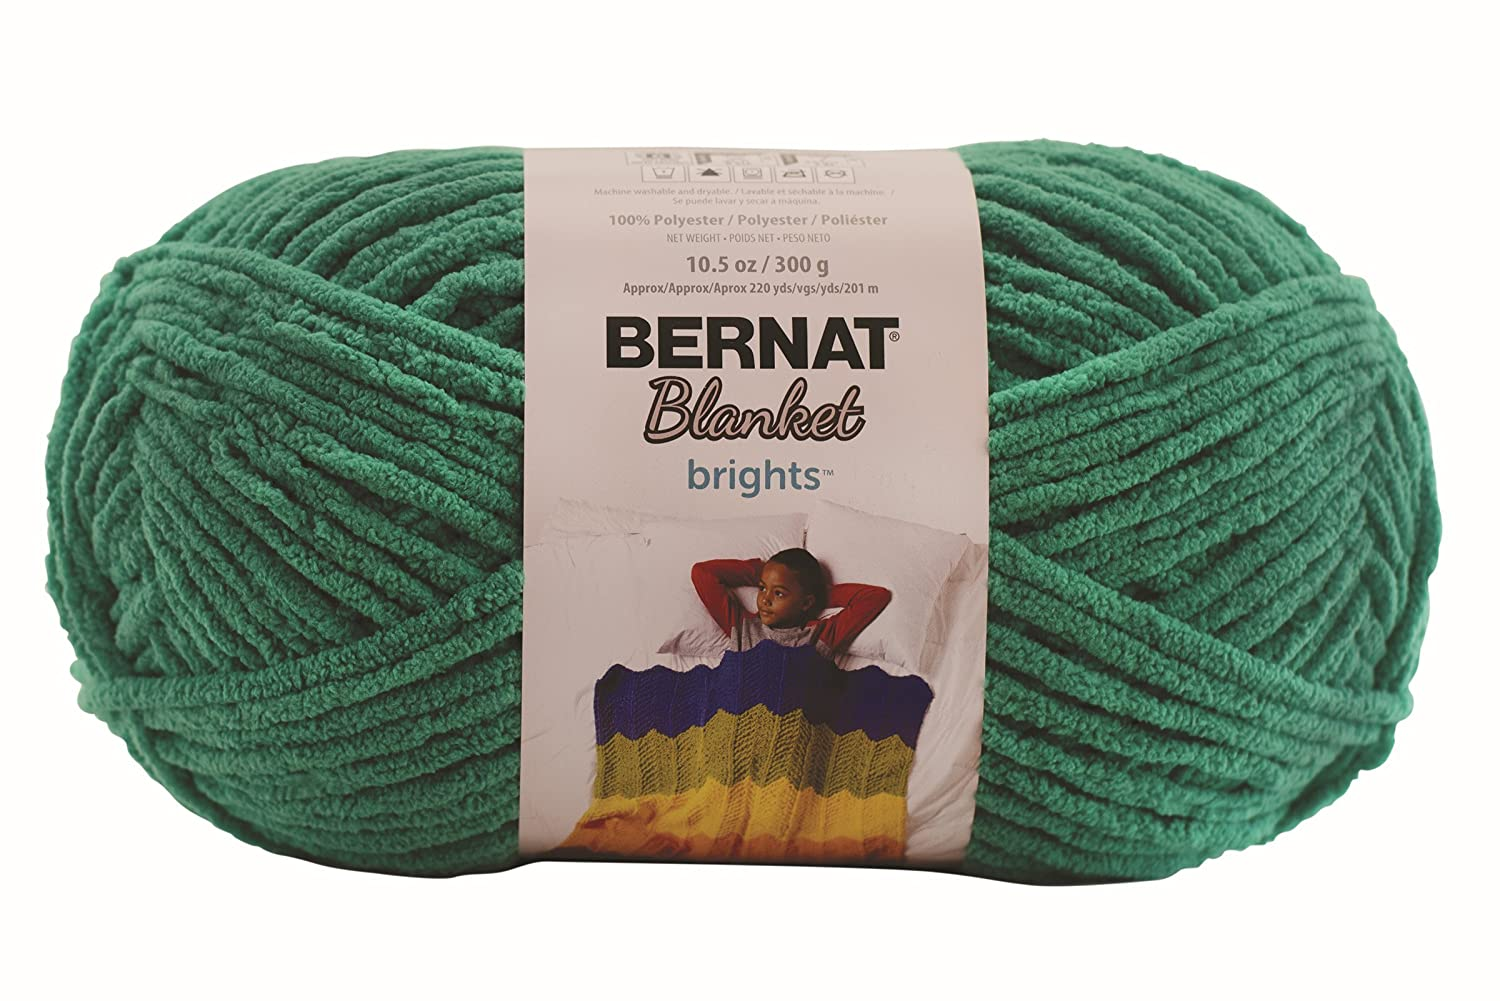 Bernat Blanket BrightsYarn - (6) Super Bulky Gauge - 10.5 oz - School Bus Yellow - Machine Wash & Dry 16121212003